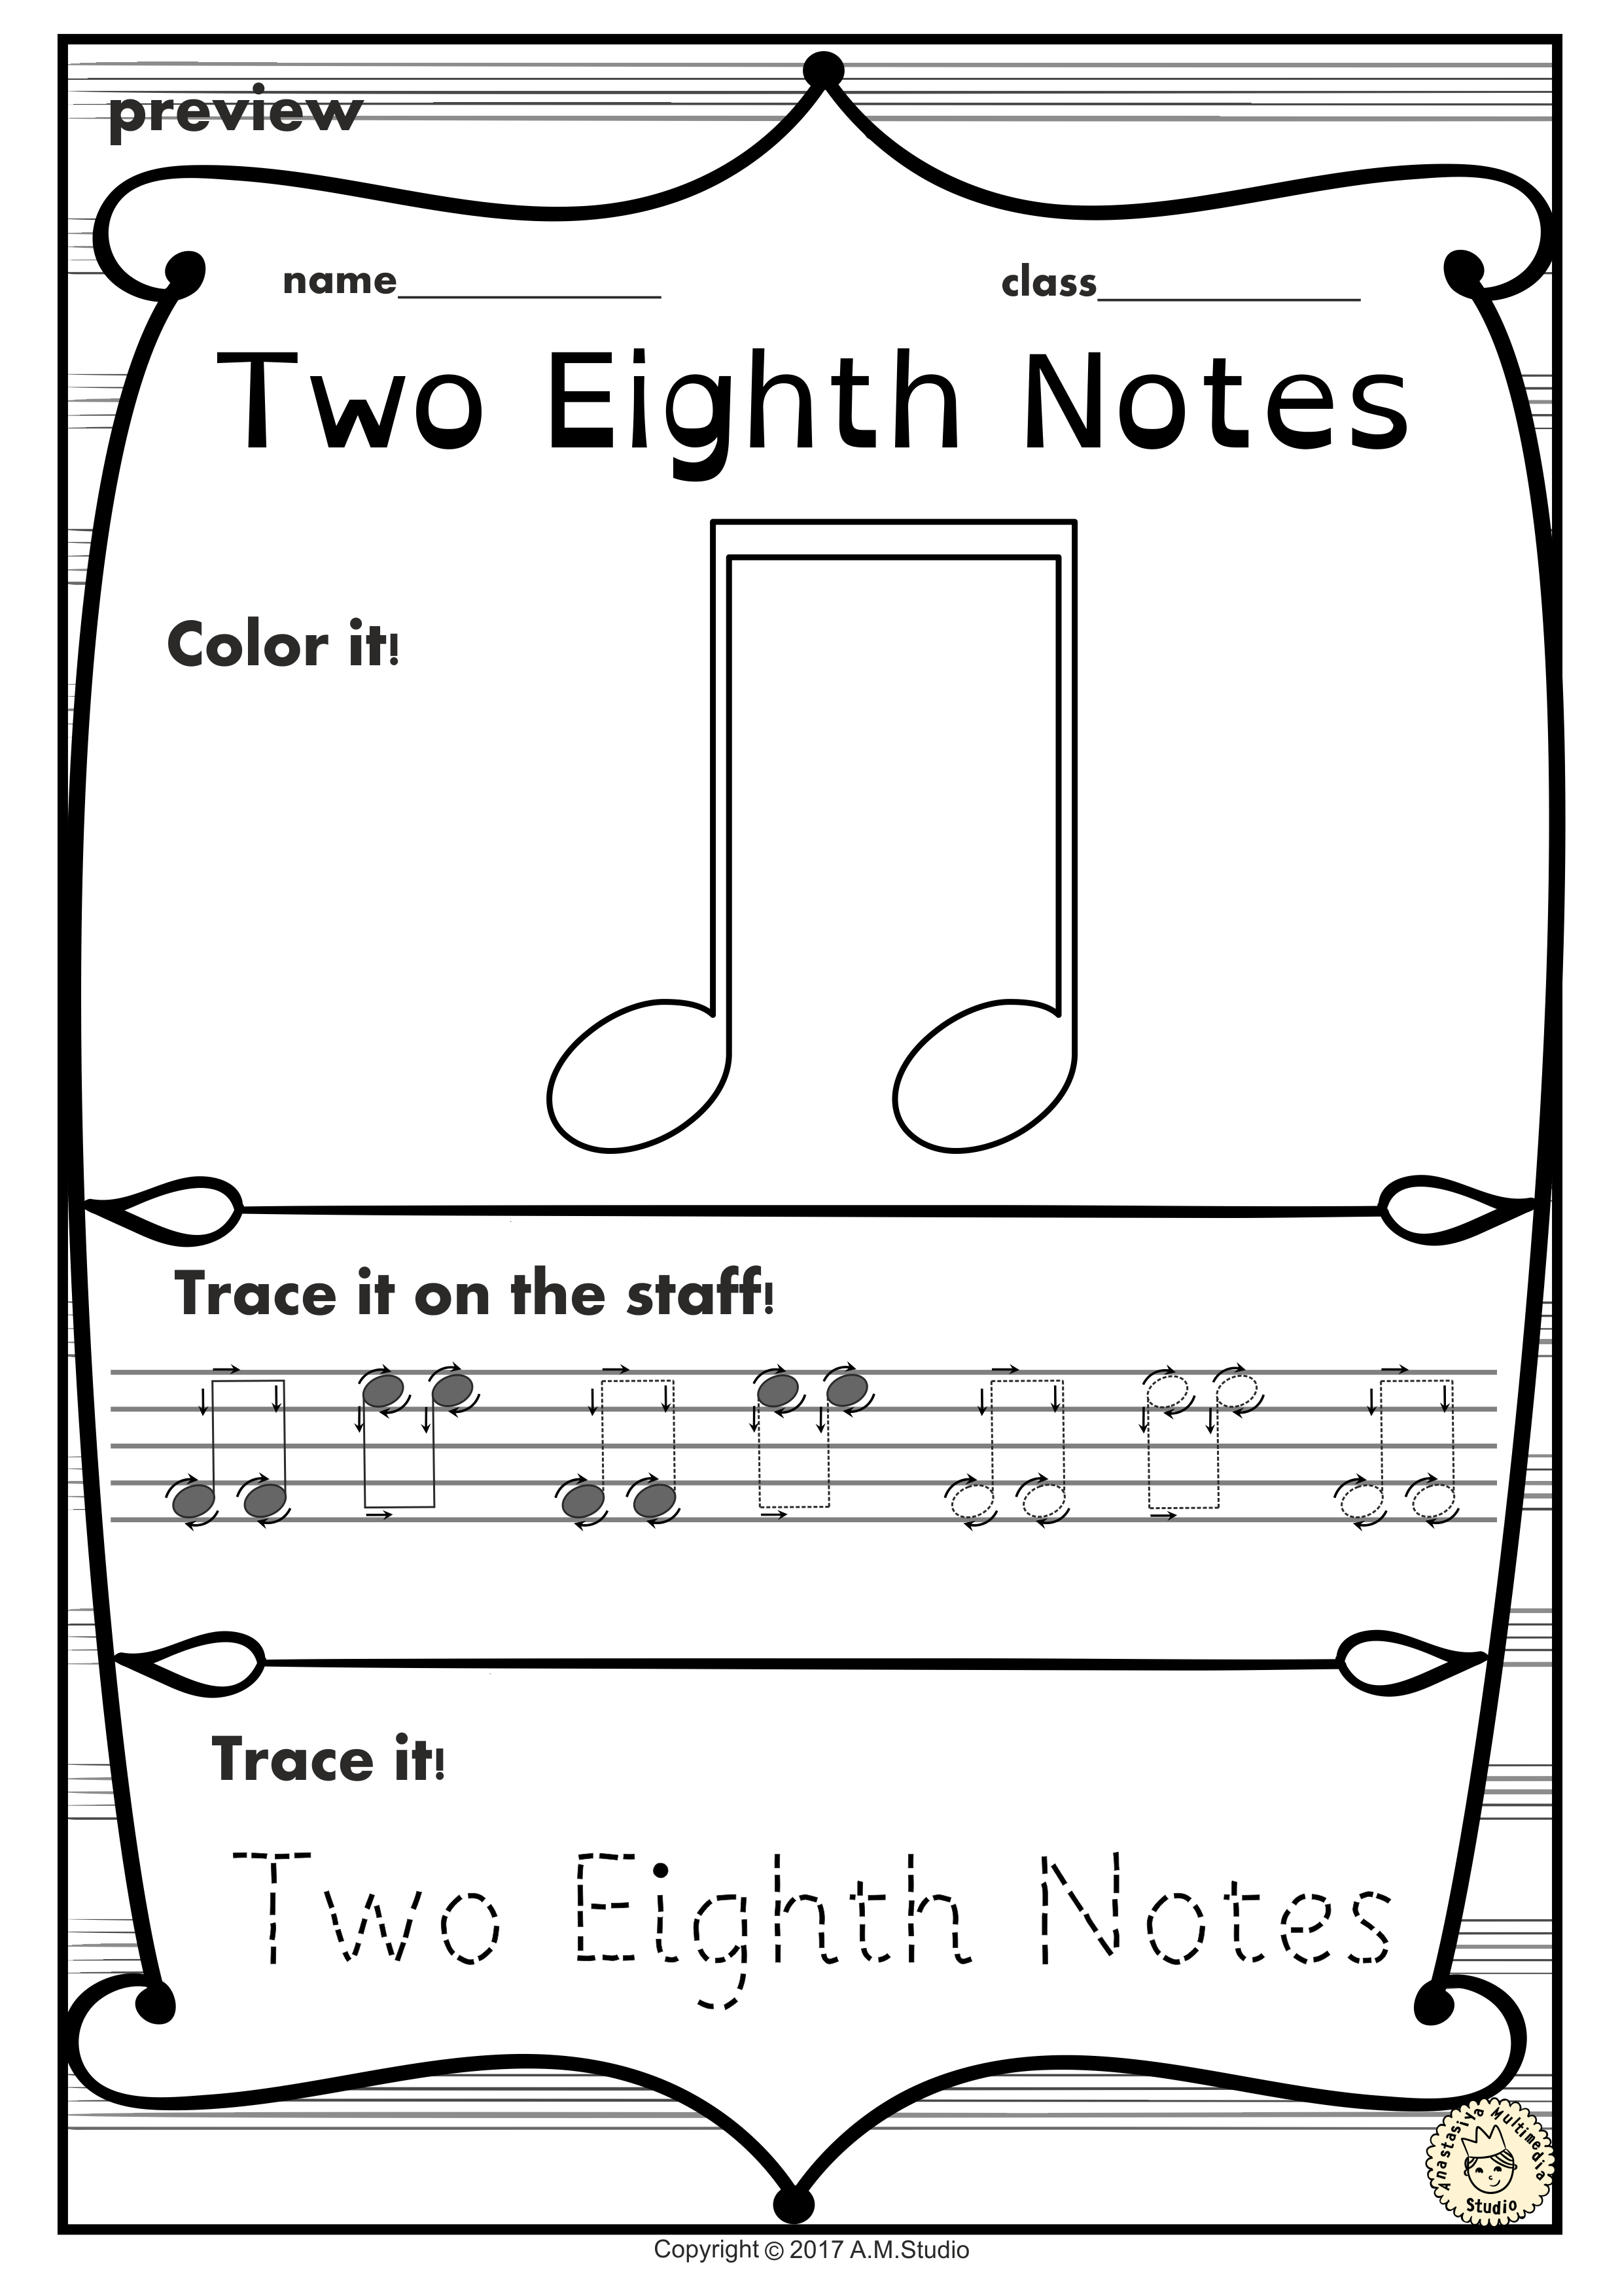 A Set Of 19 Music Worksheets Is Created To Help Your Students Learn